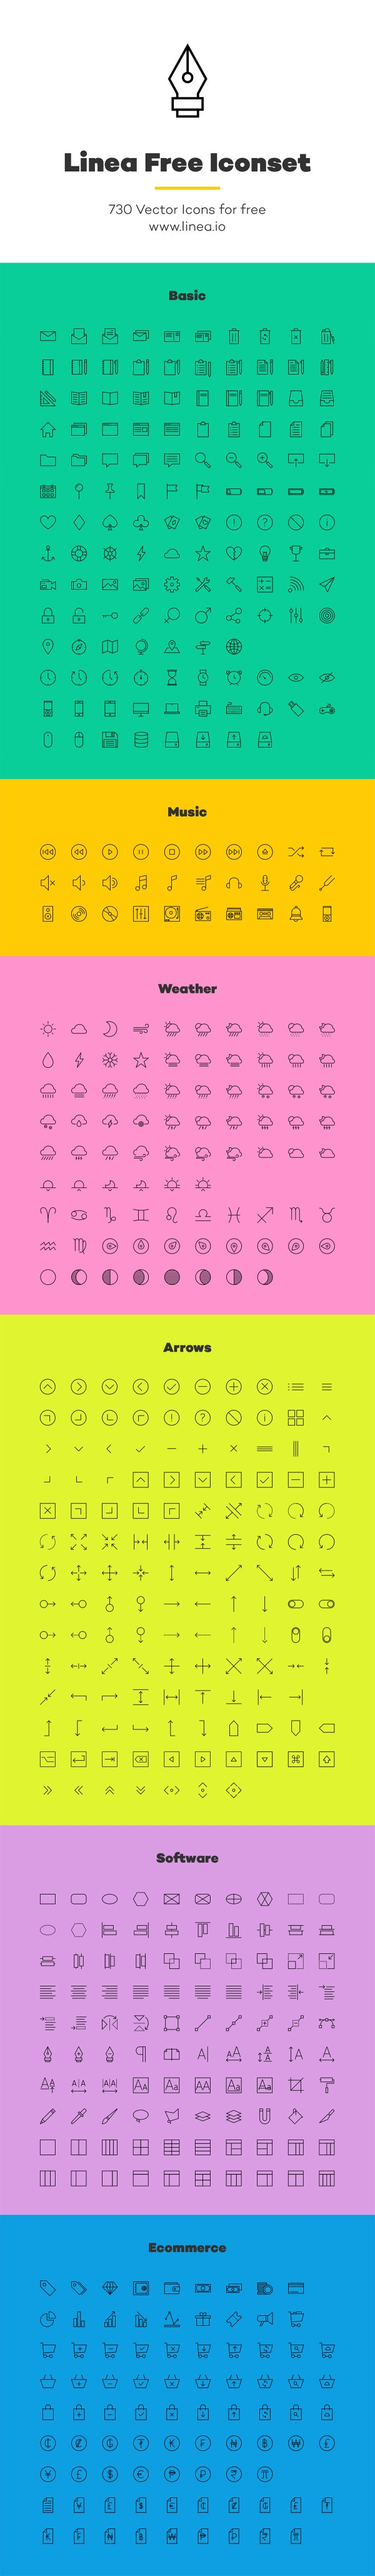 Free Icons - Linea: Free Outline Iconset